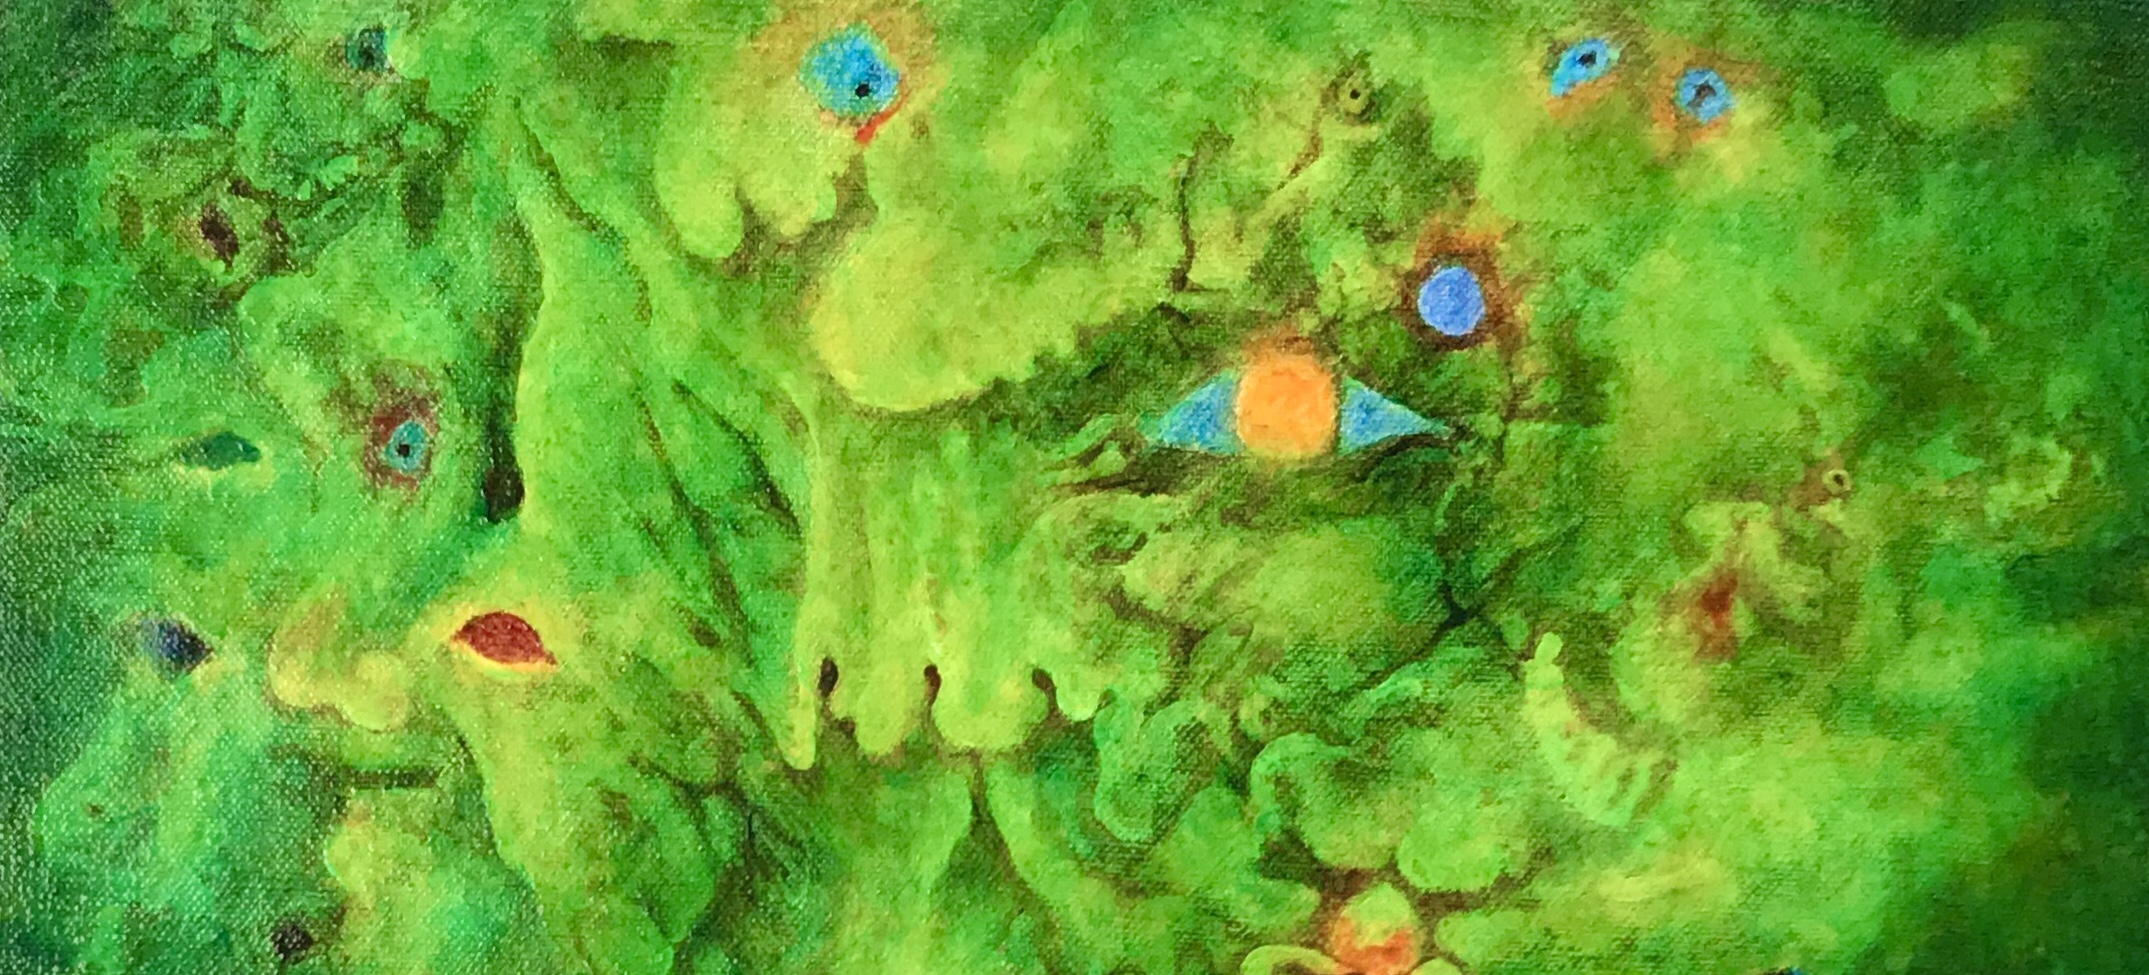 Detail of a painting by MJ Seal that resembles grotesque faces emerging from a leafy chartreuse green background